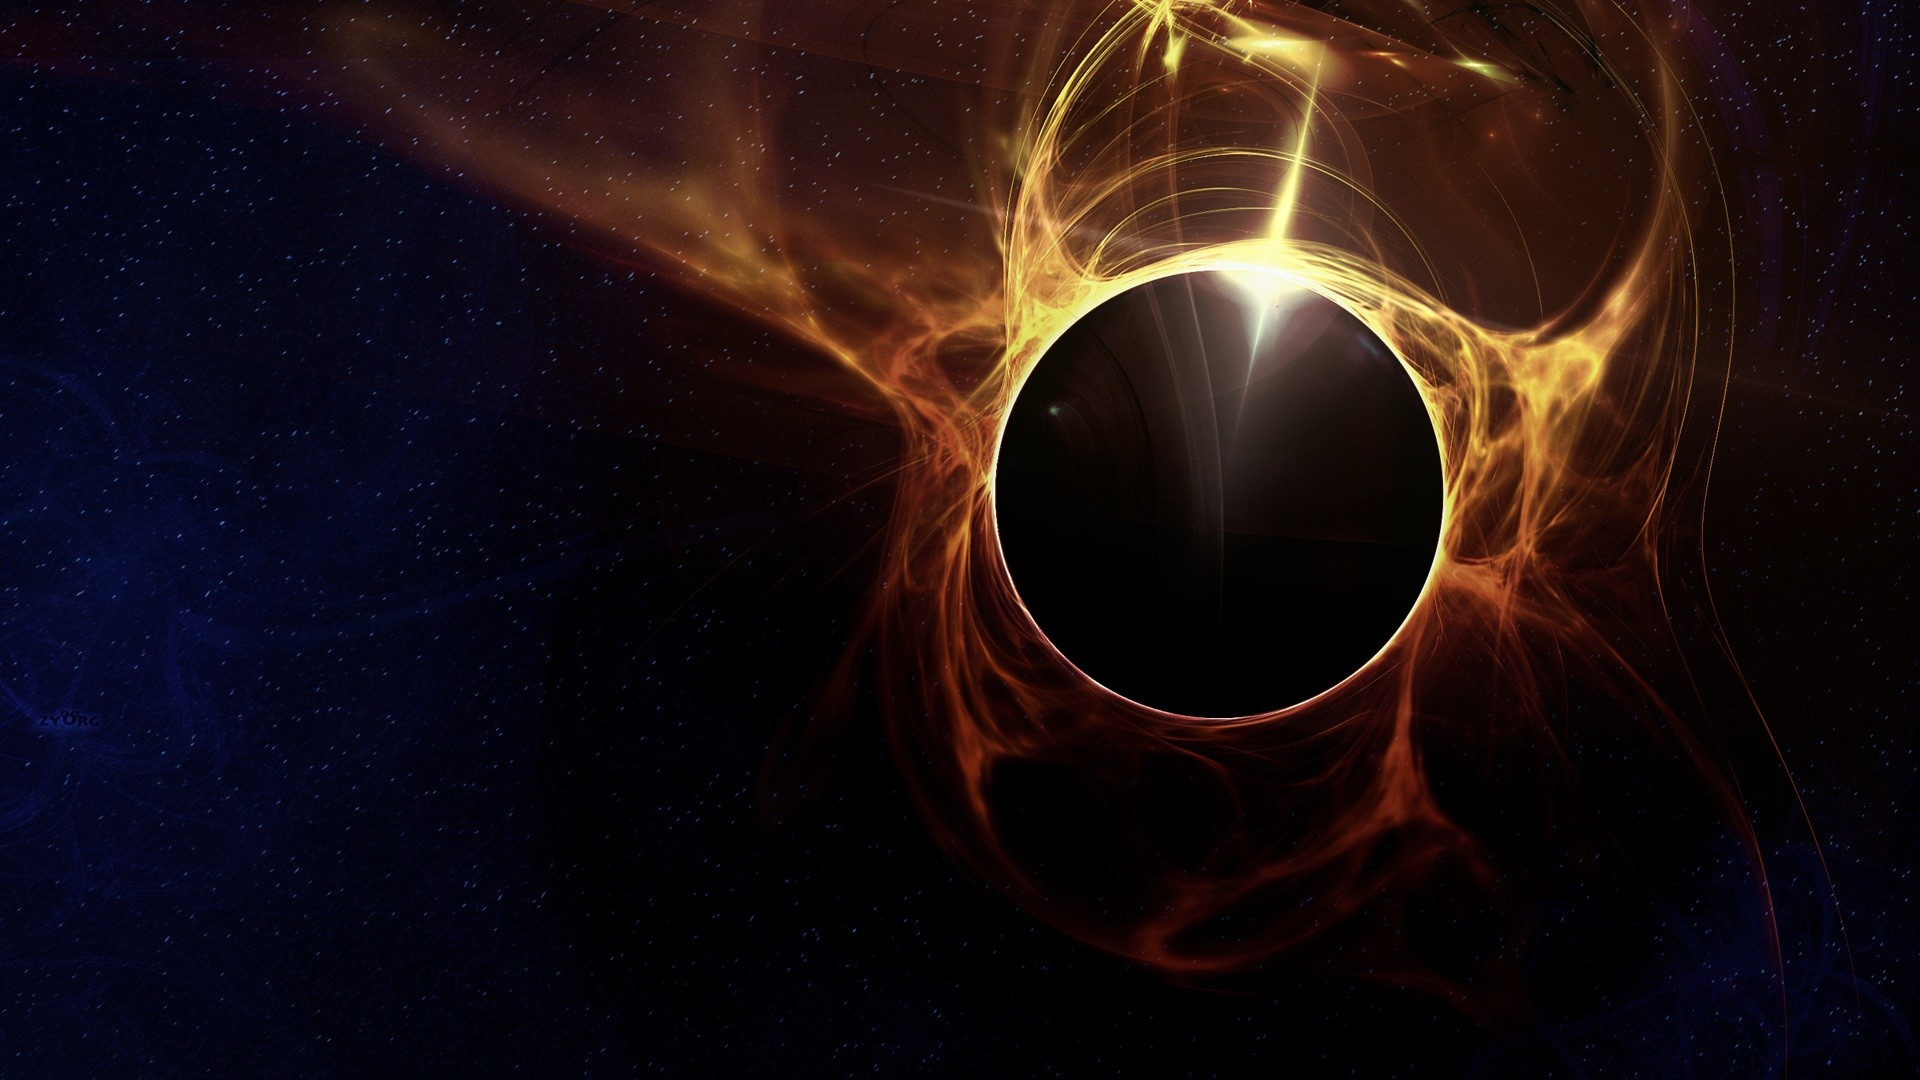 [42+] HD Eclipse Wallpaper on WallpaperSafari